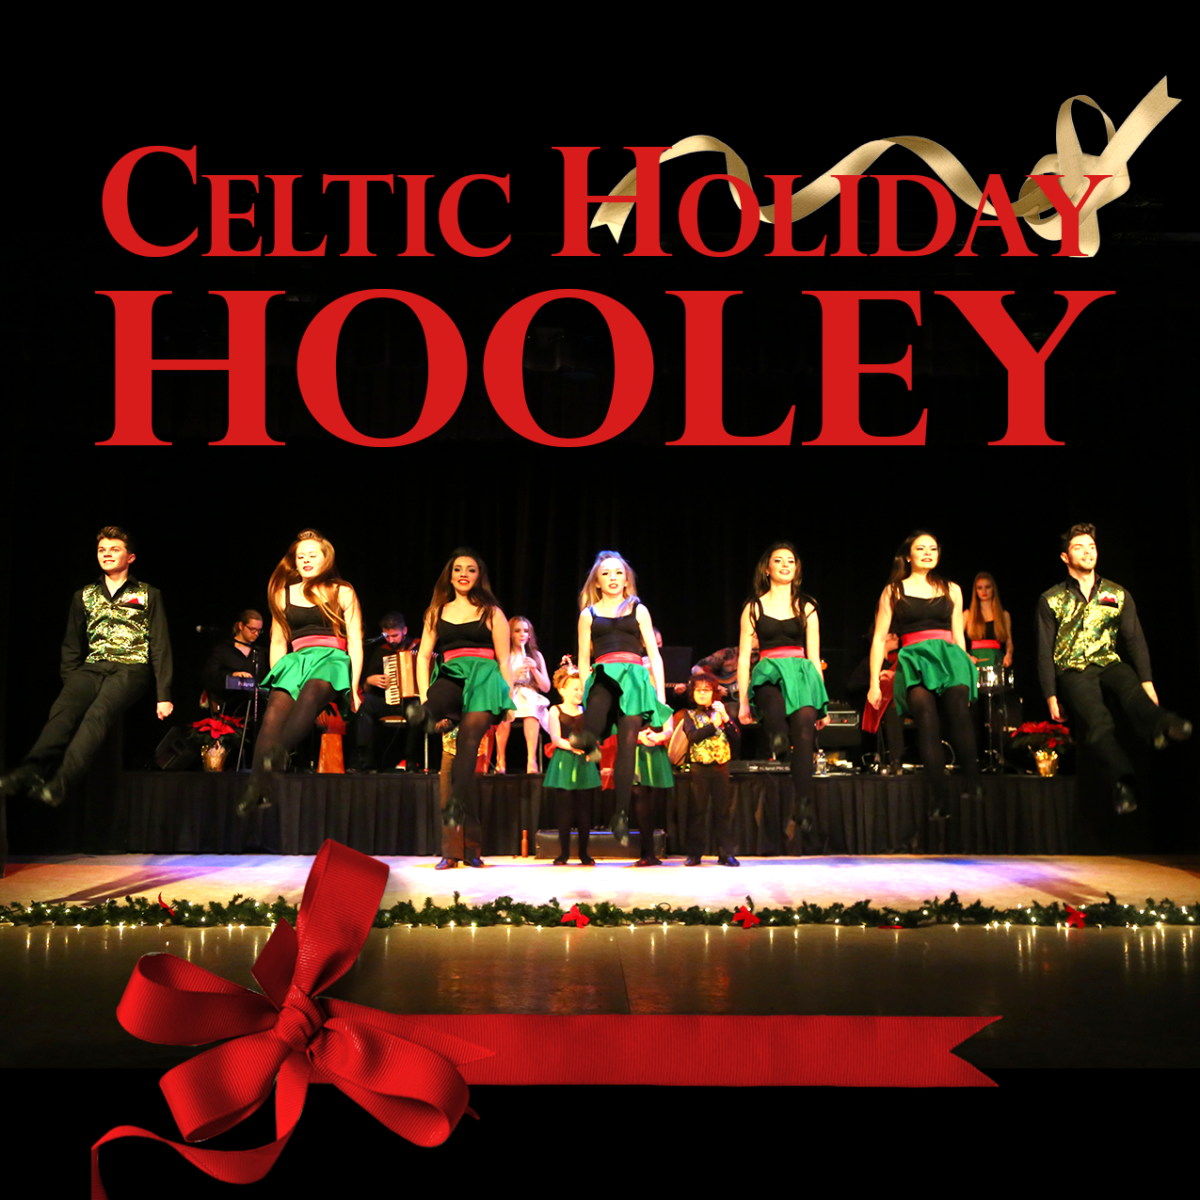 Irish Christmas show